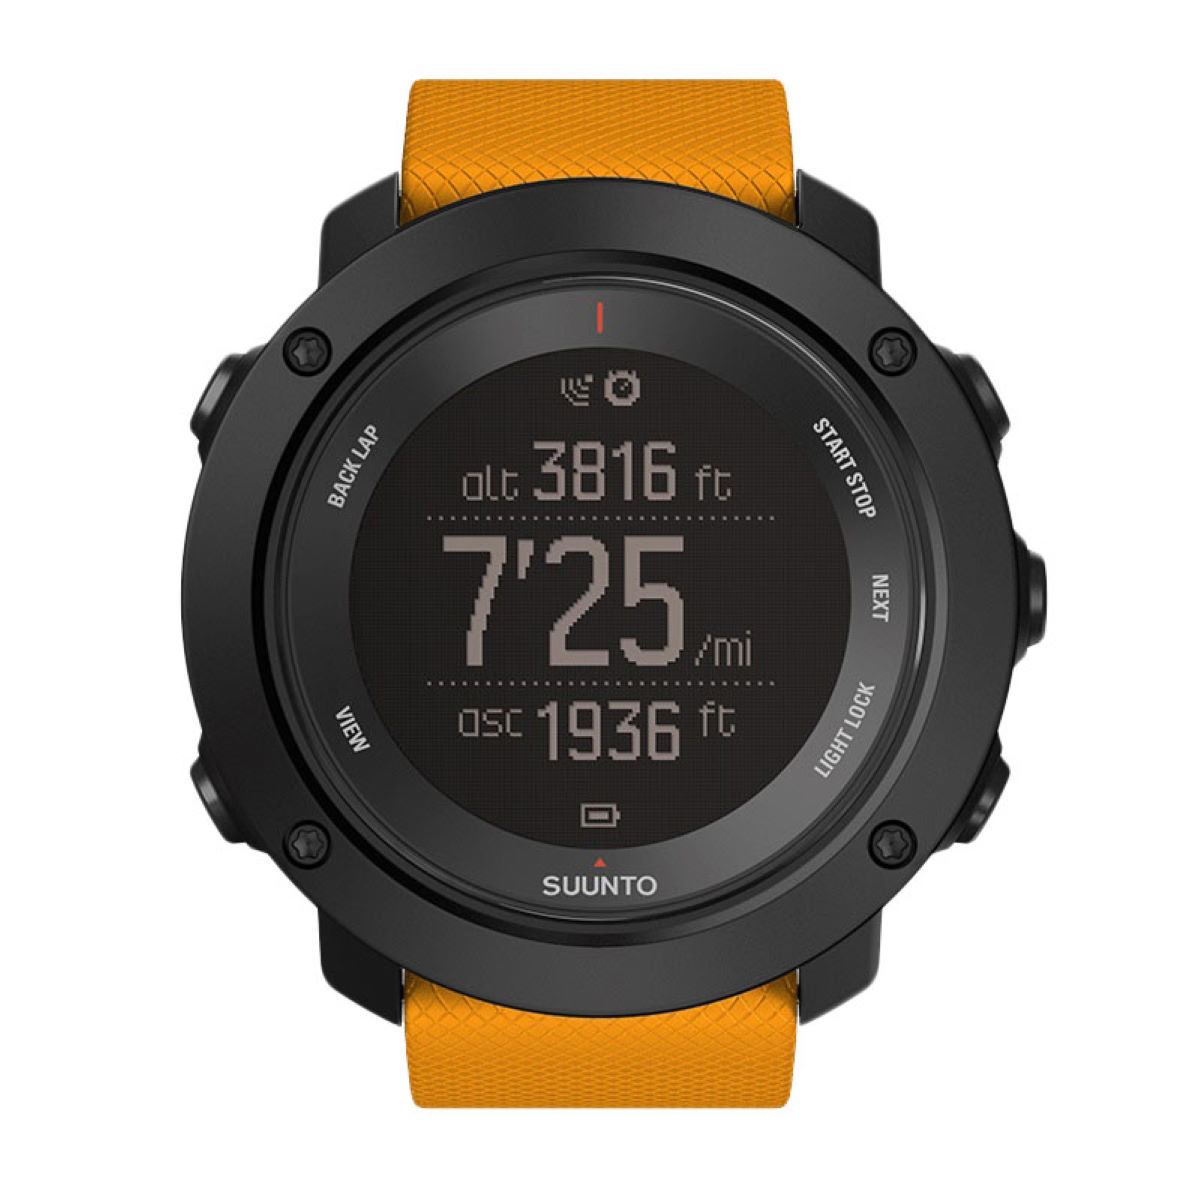 Suunto Ambit 3 Vertical HR (Exclusivo, con pulsómetro)